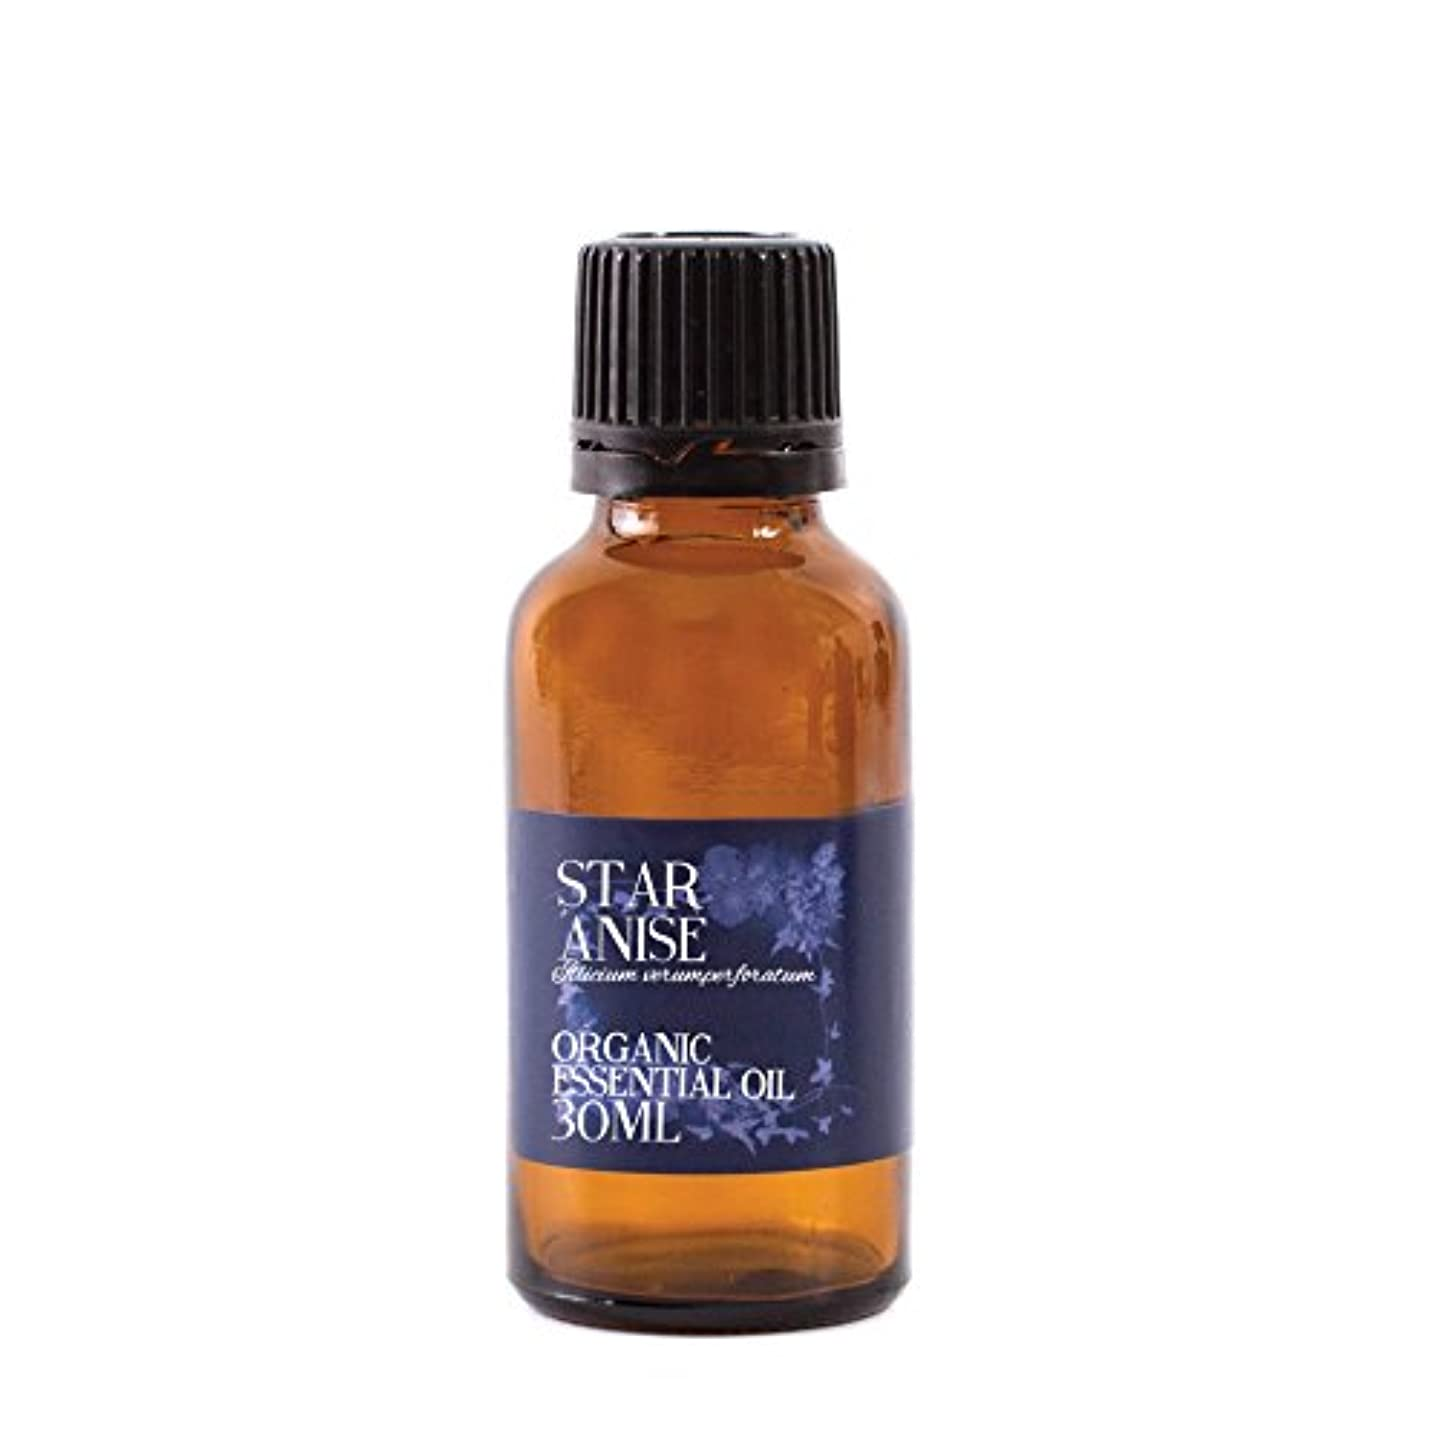 仮説が欲しい風が強いMystic Moments | Star Anise Organic Essential Oil - 30ml - 100% Pure